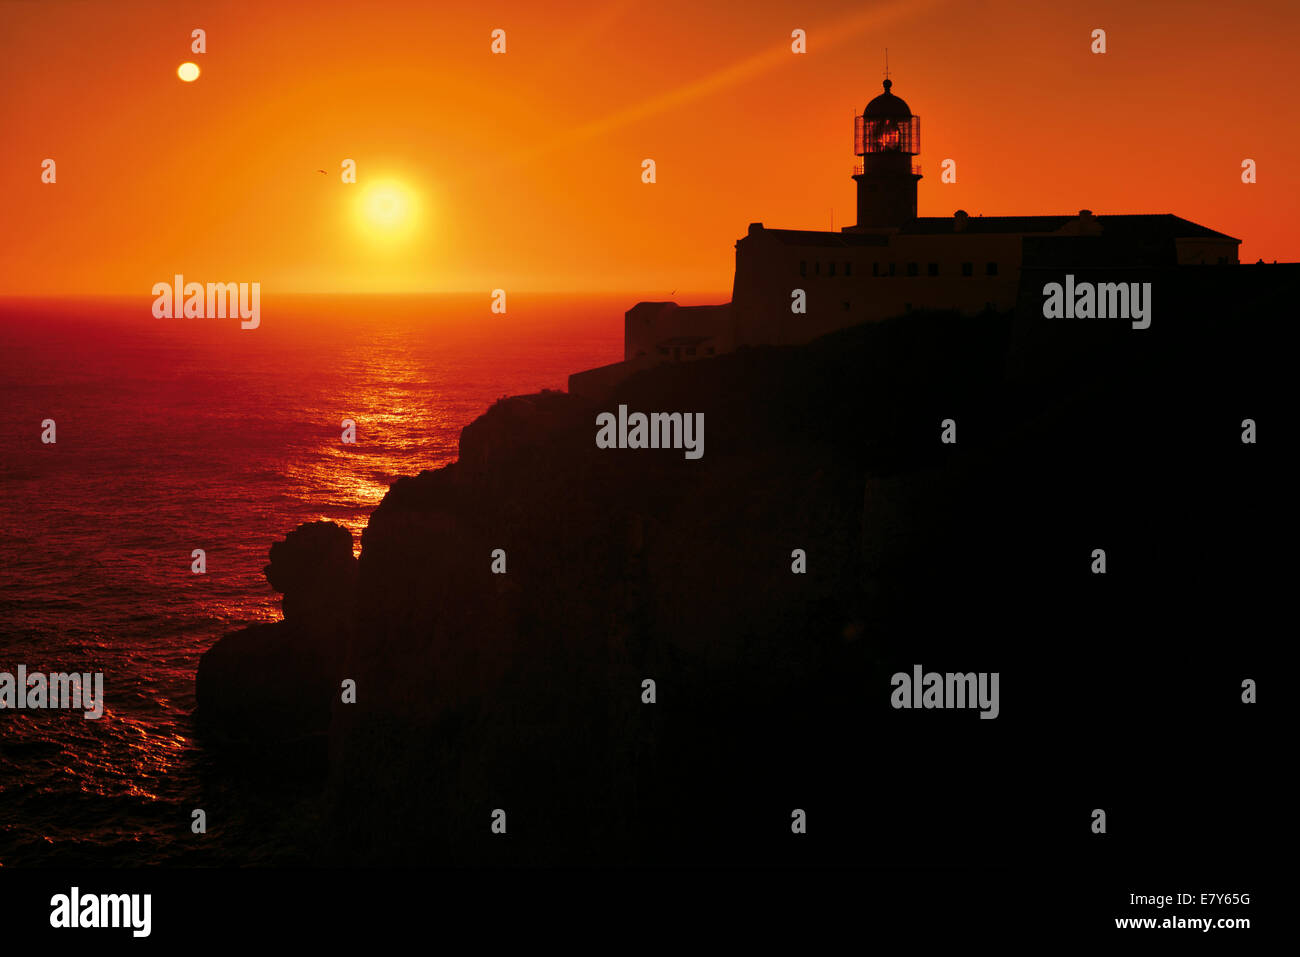 Portugal, Algarve: Sundown at the Lighthouse of Cape Saint Vincent Stock Photo